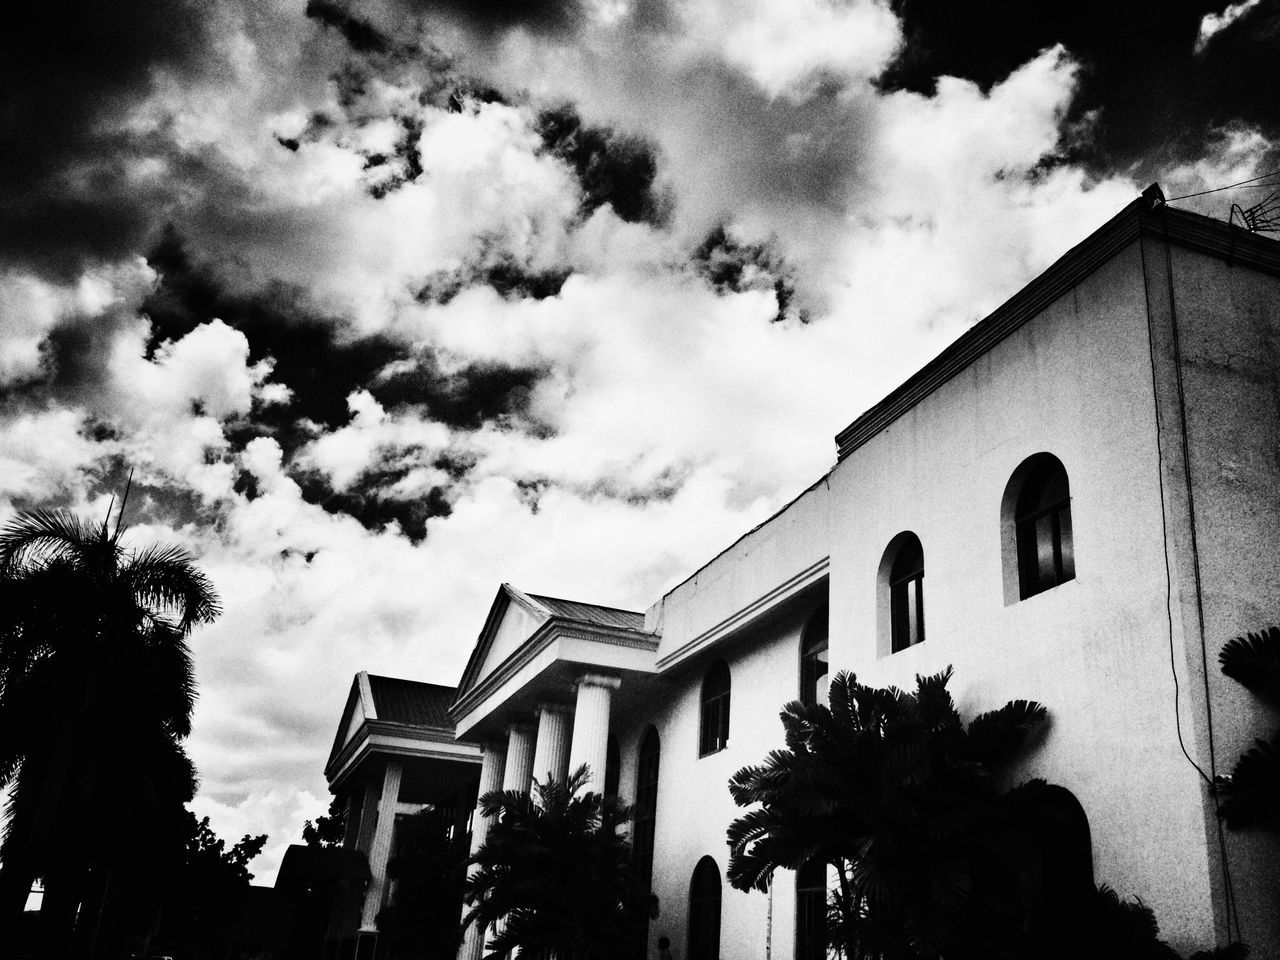 #B&W #capitol #melancholy Amateur Photography Amateurphotography Architecture Building Exterior Built Structure Cloud - Sky Cloudy Cloudy Sky Dark Skies Day Eyeemdale Filtered Filtered Image Filtered Photo Low Angle View Mobile Photographer Mobilephotography New No People Outdoors PPS New Capitol Building Sky